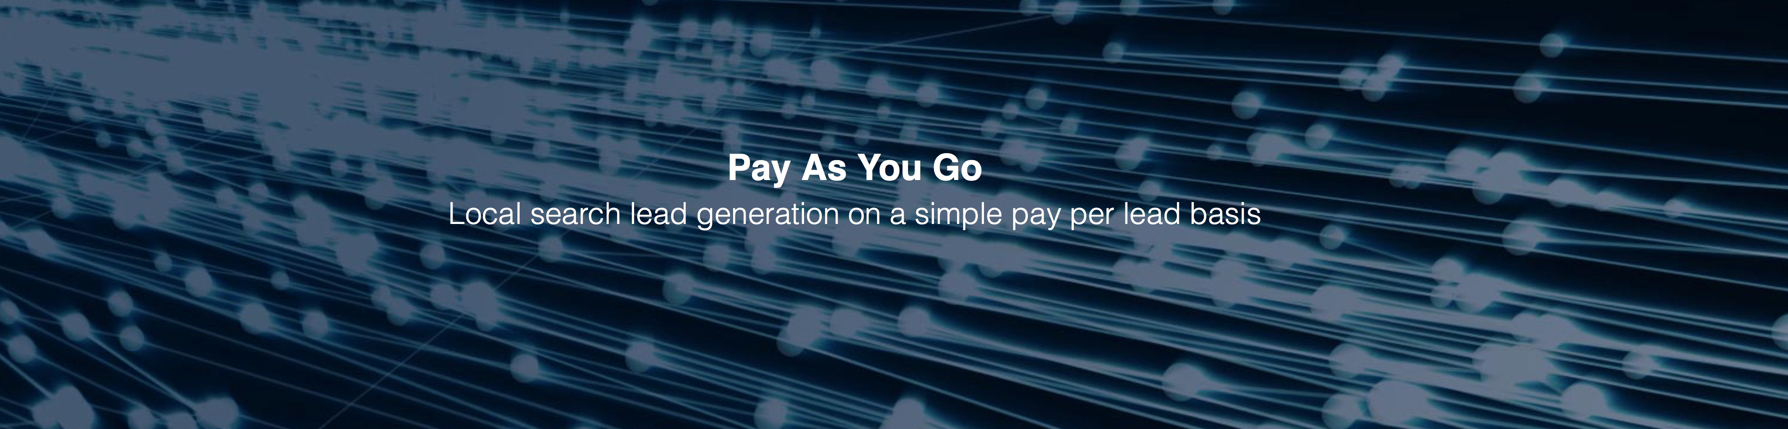 Pay As You Go, eSales Hub, Local Search Lead Generation,